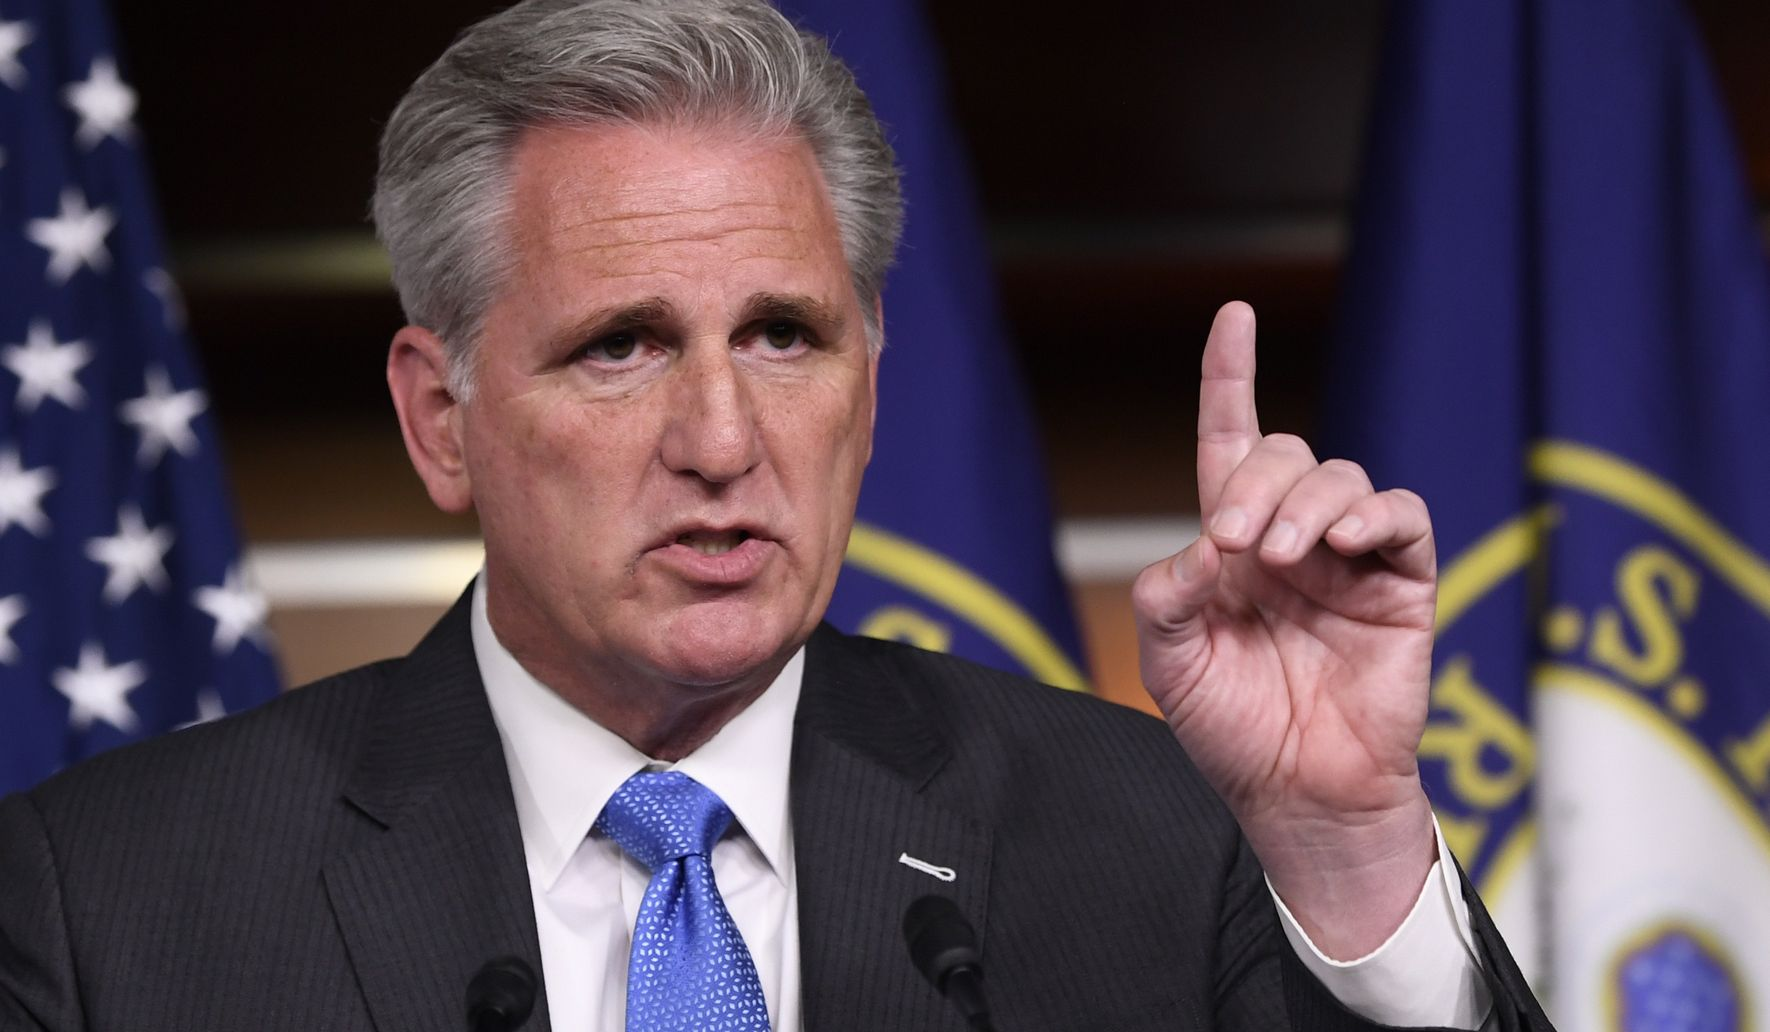 Rep. Kevin McCarthy to vulnerable House Democrats: Pelosi 'just gave up your job'